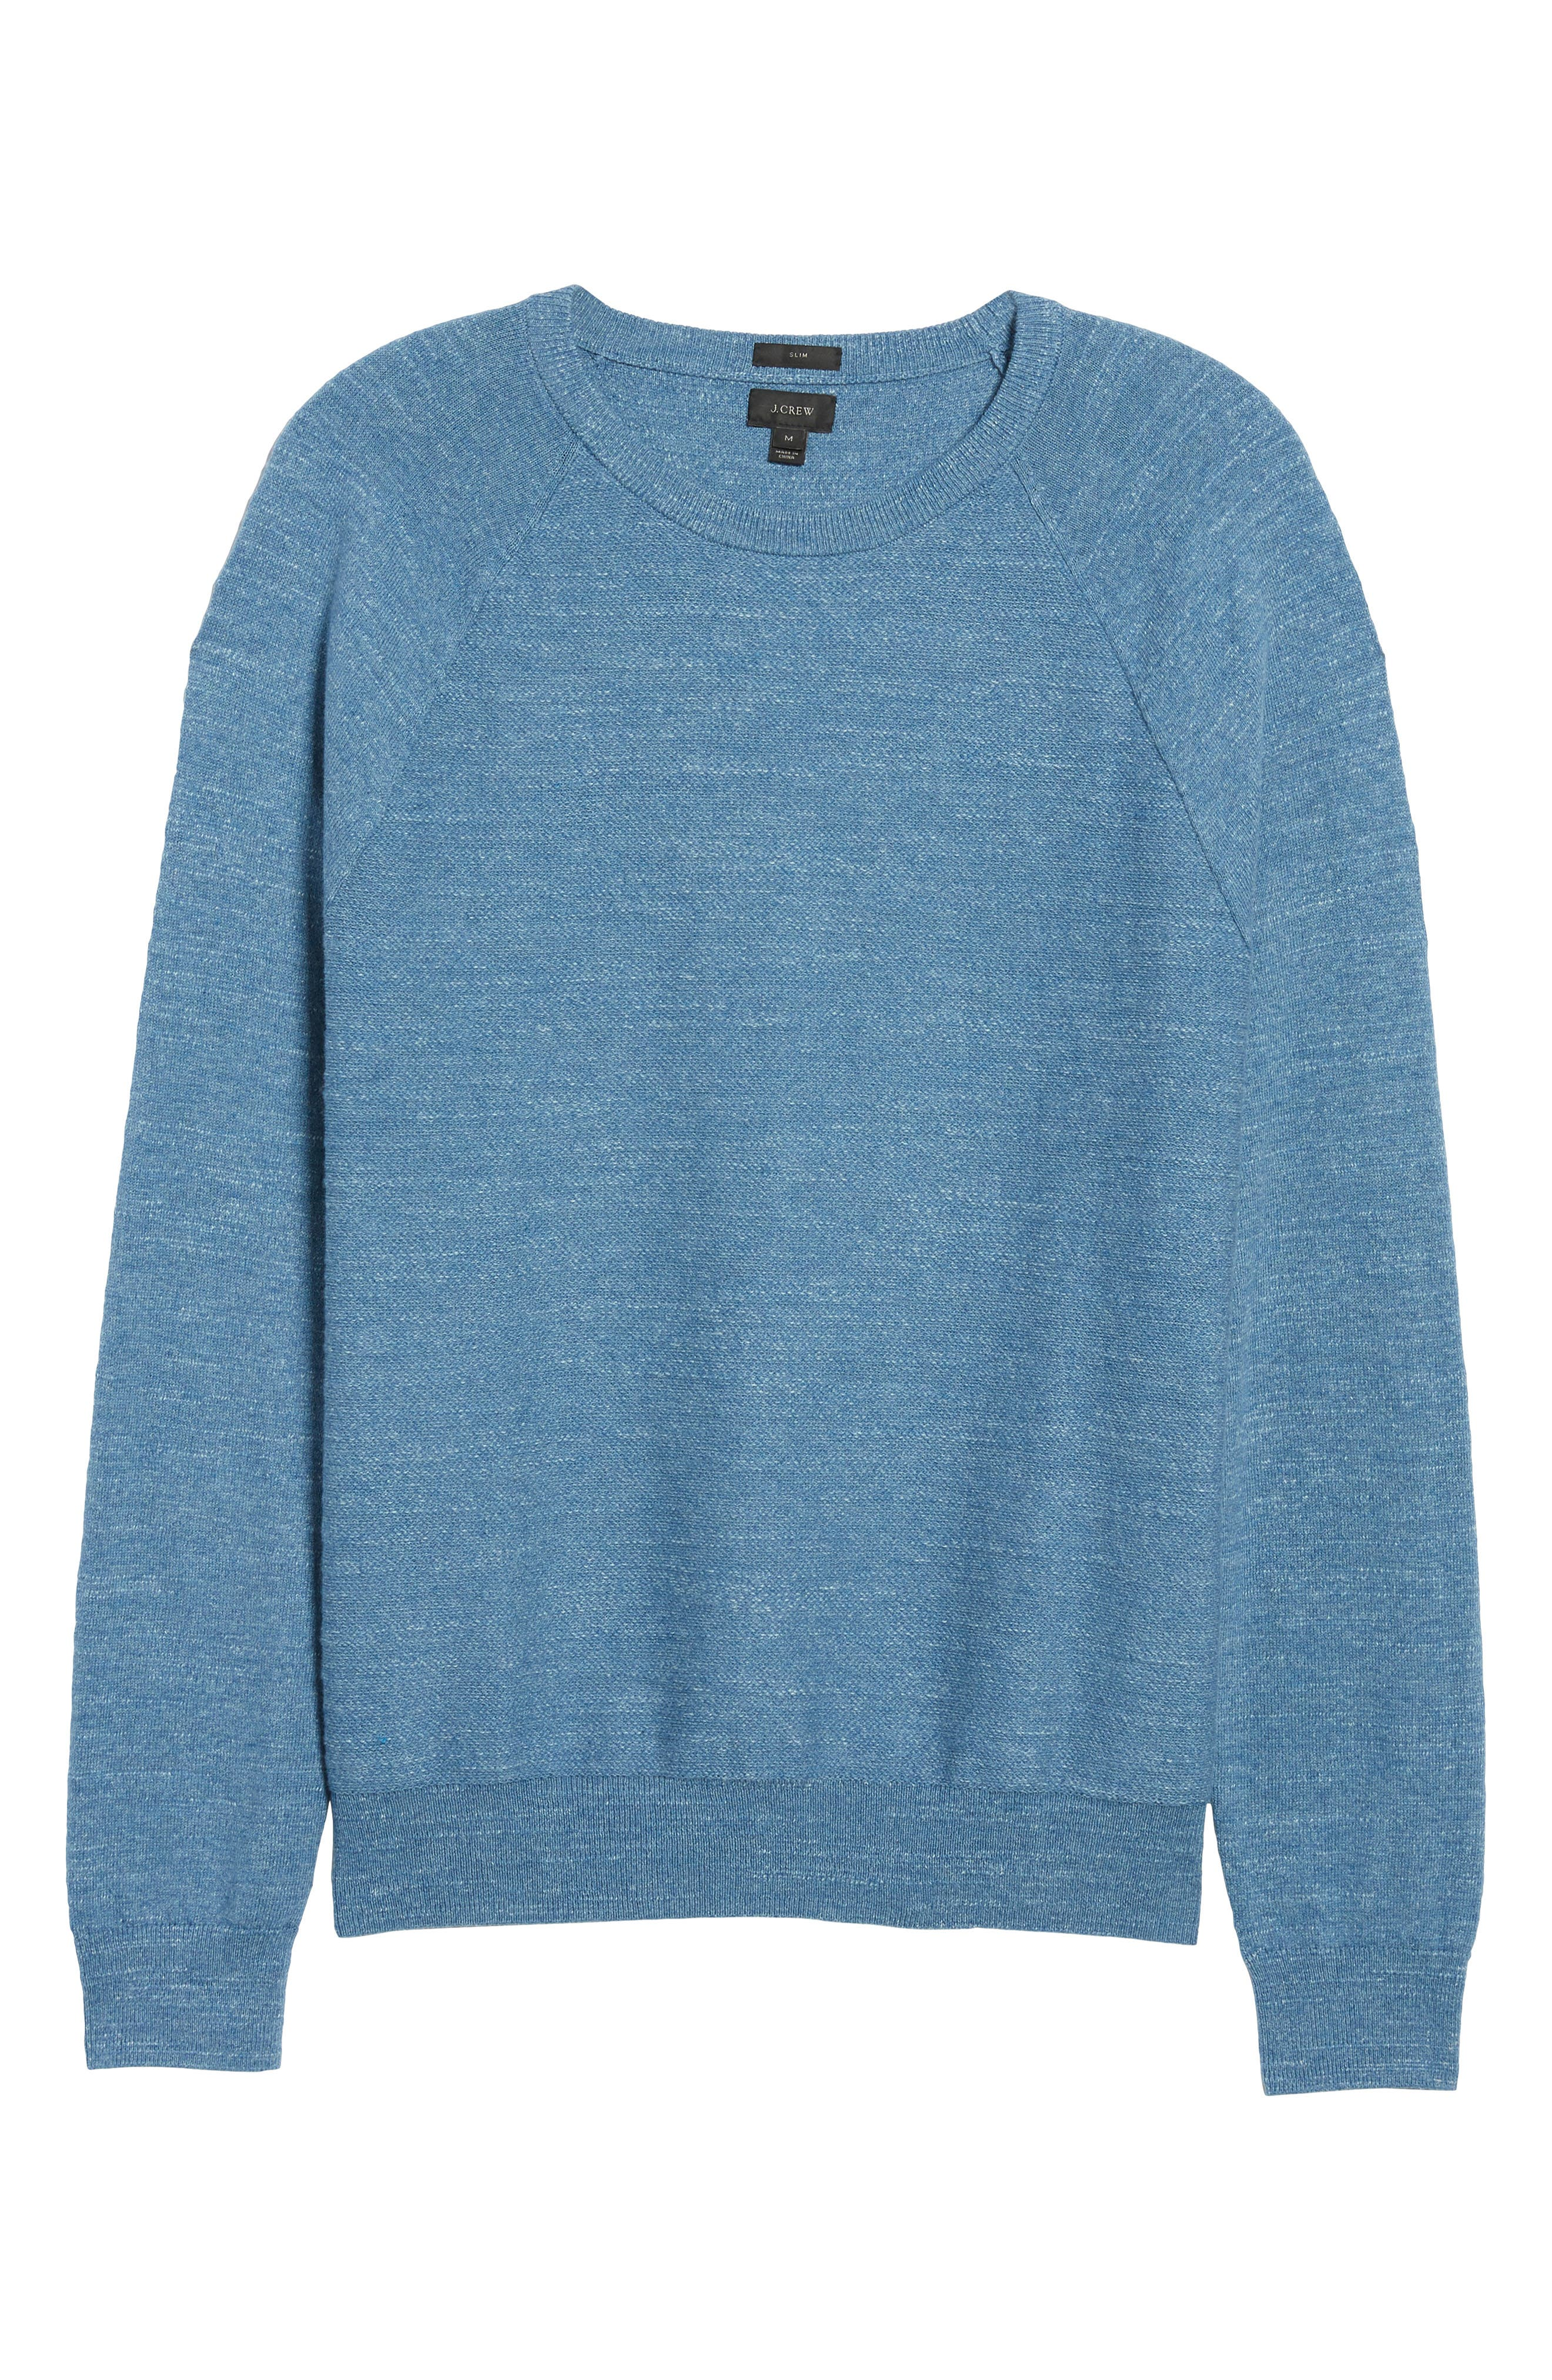 Slim Rugged Cotton Sweater,                             Alternate thumbnail 11, color,